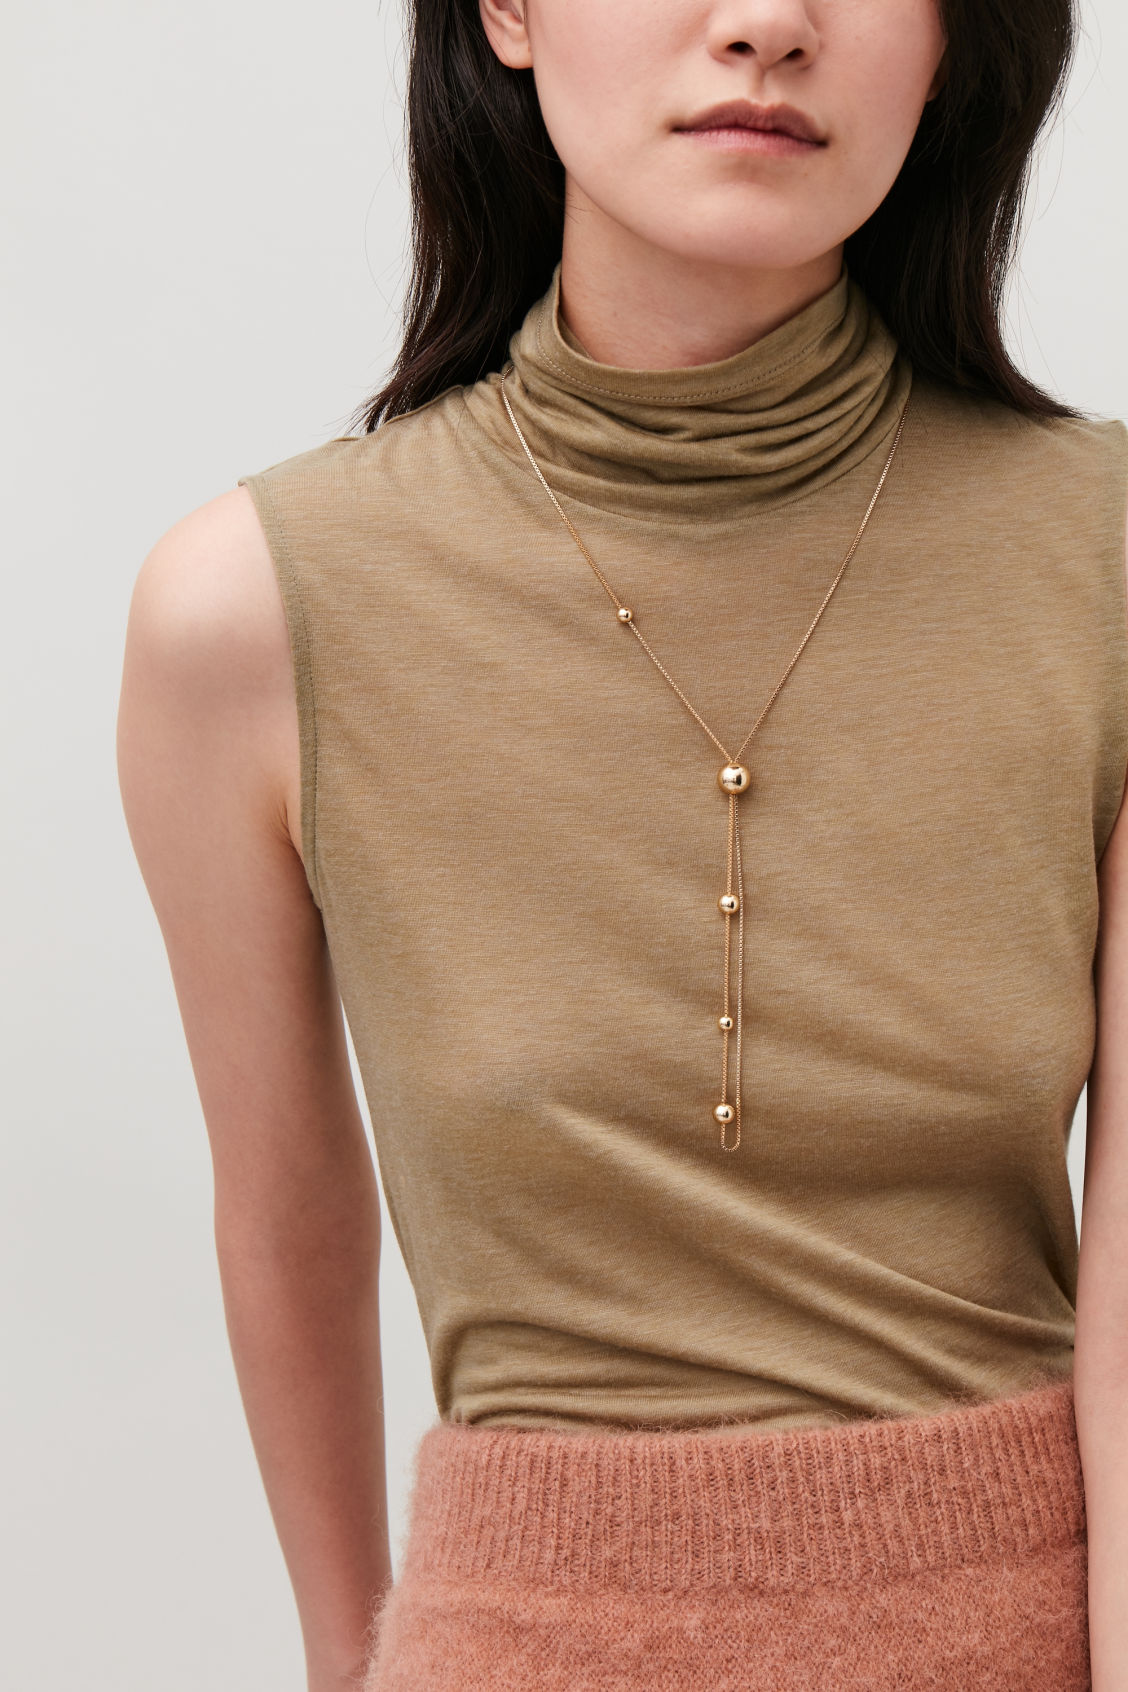 Detailed image of Cos long chain necklace with balls in gold